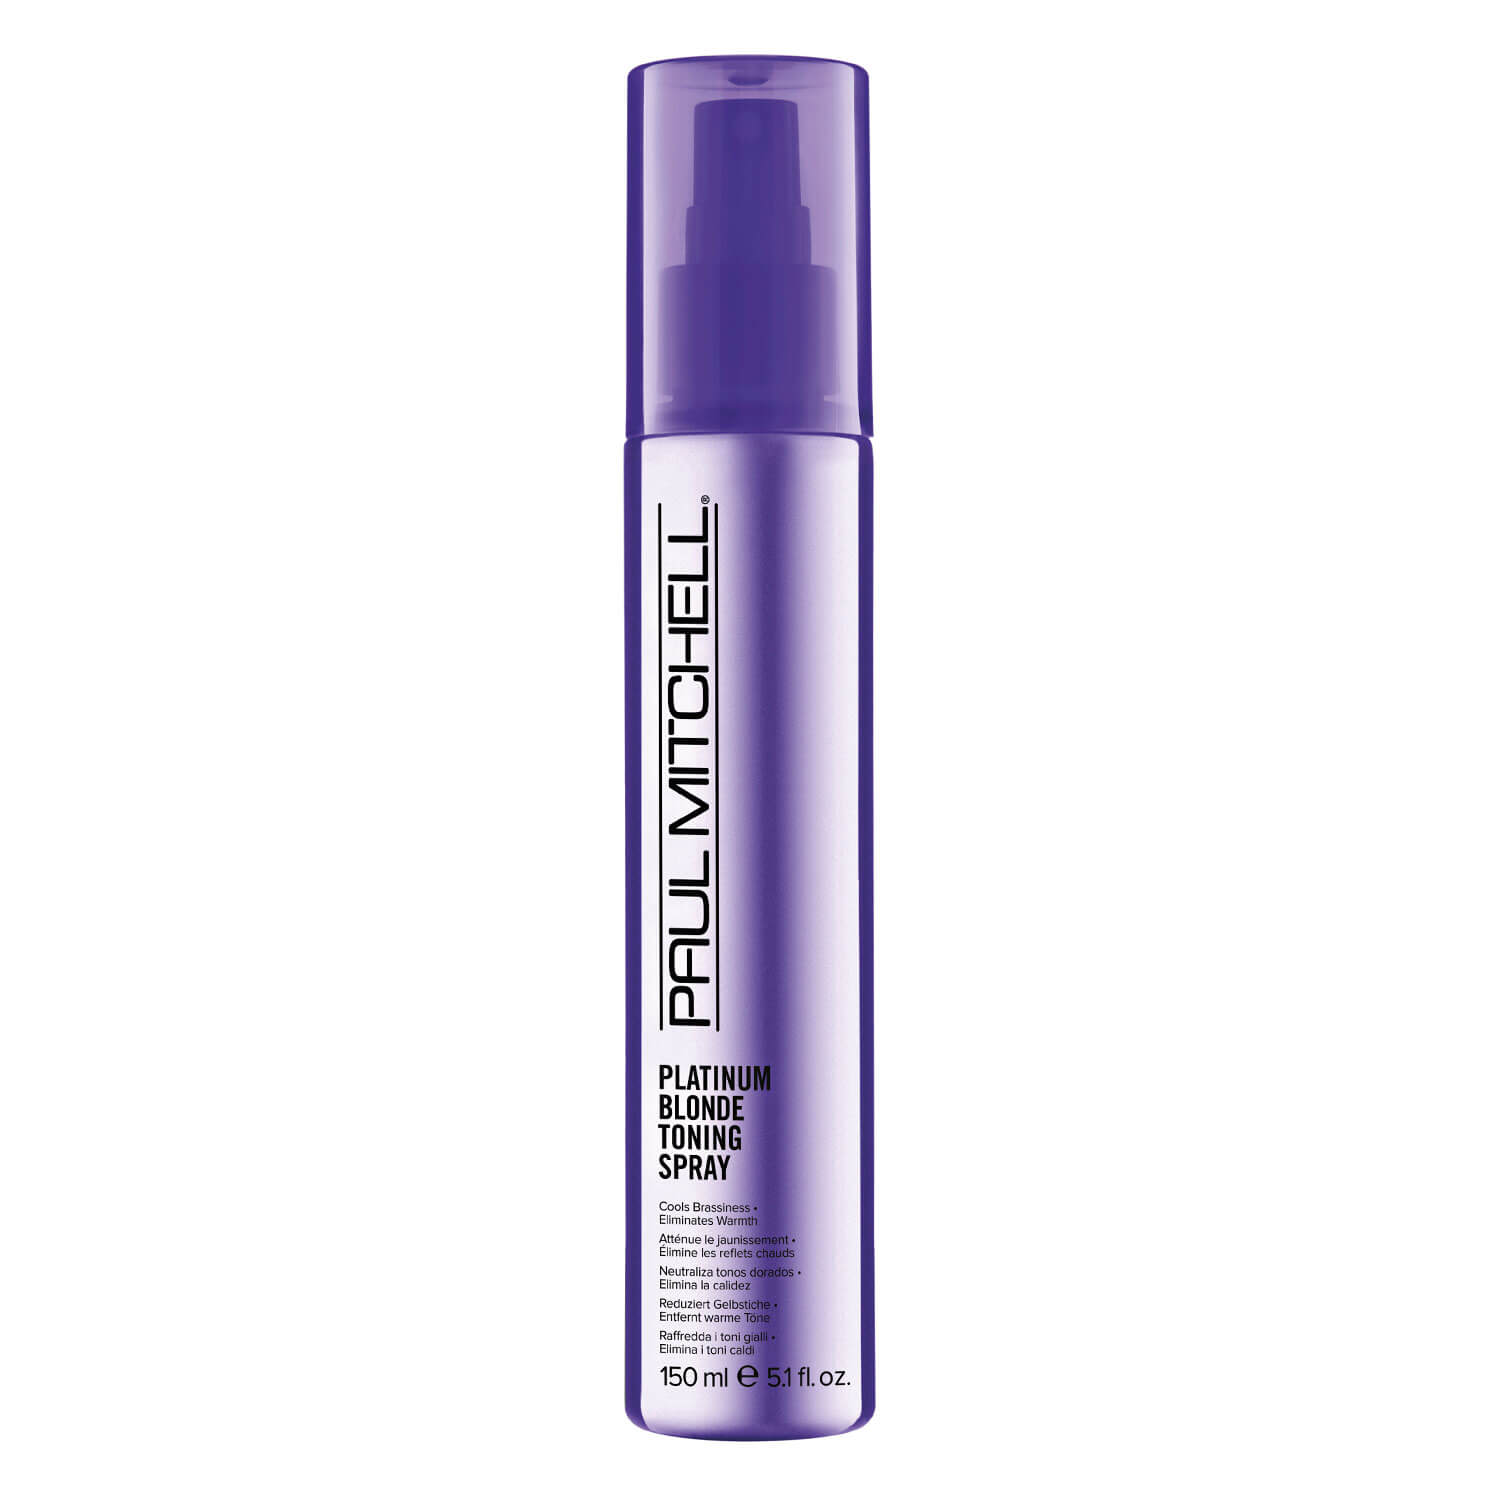 Blonde - Platinum Blonde Toning Spray